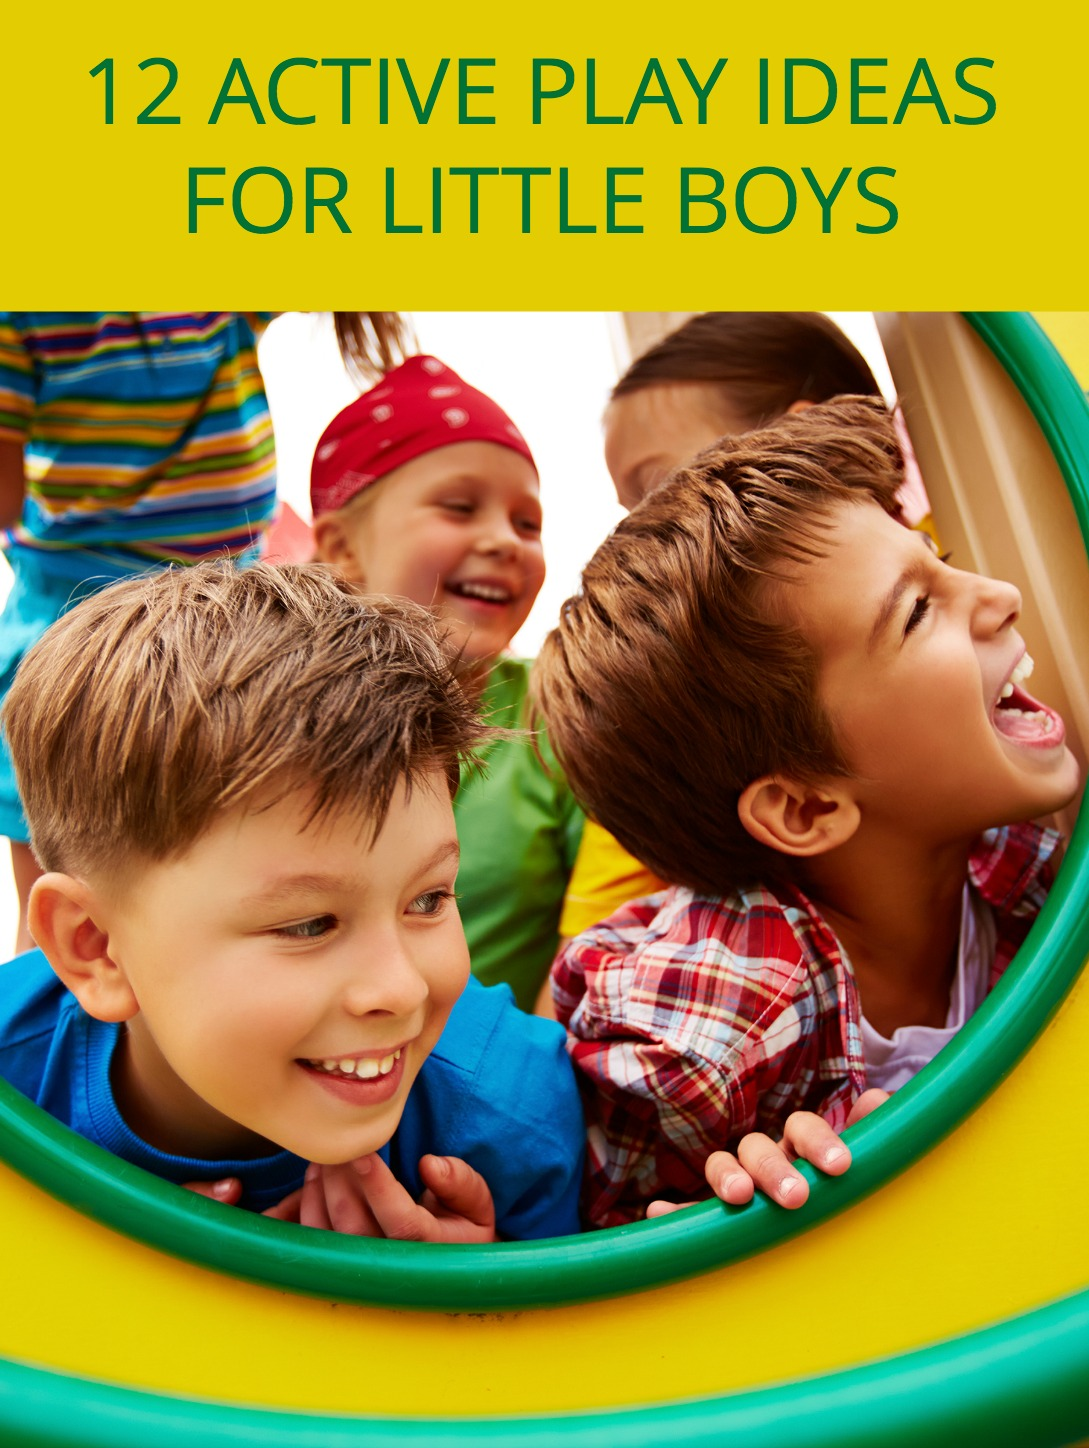 If you like a good challenge, then being a boy mom is right up your alley. Here are 12 fun activities for boys to help them burn all that extra energy.